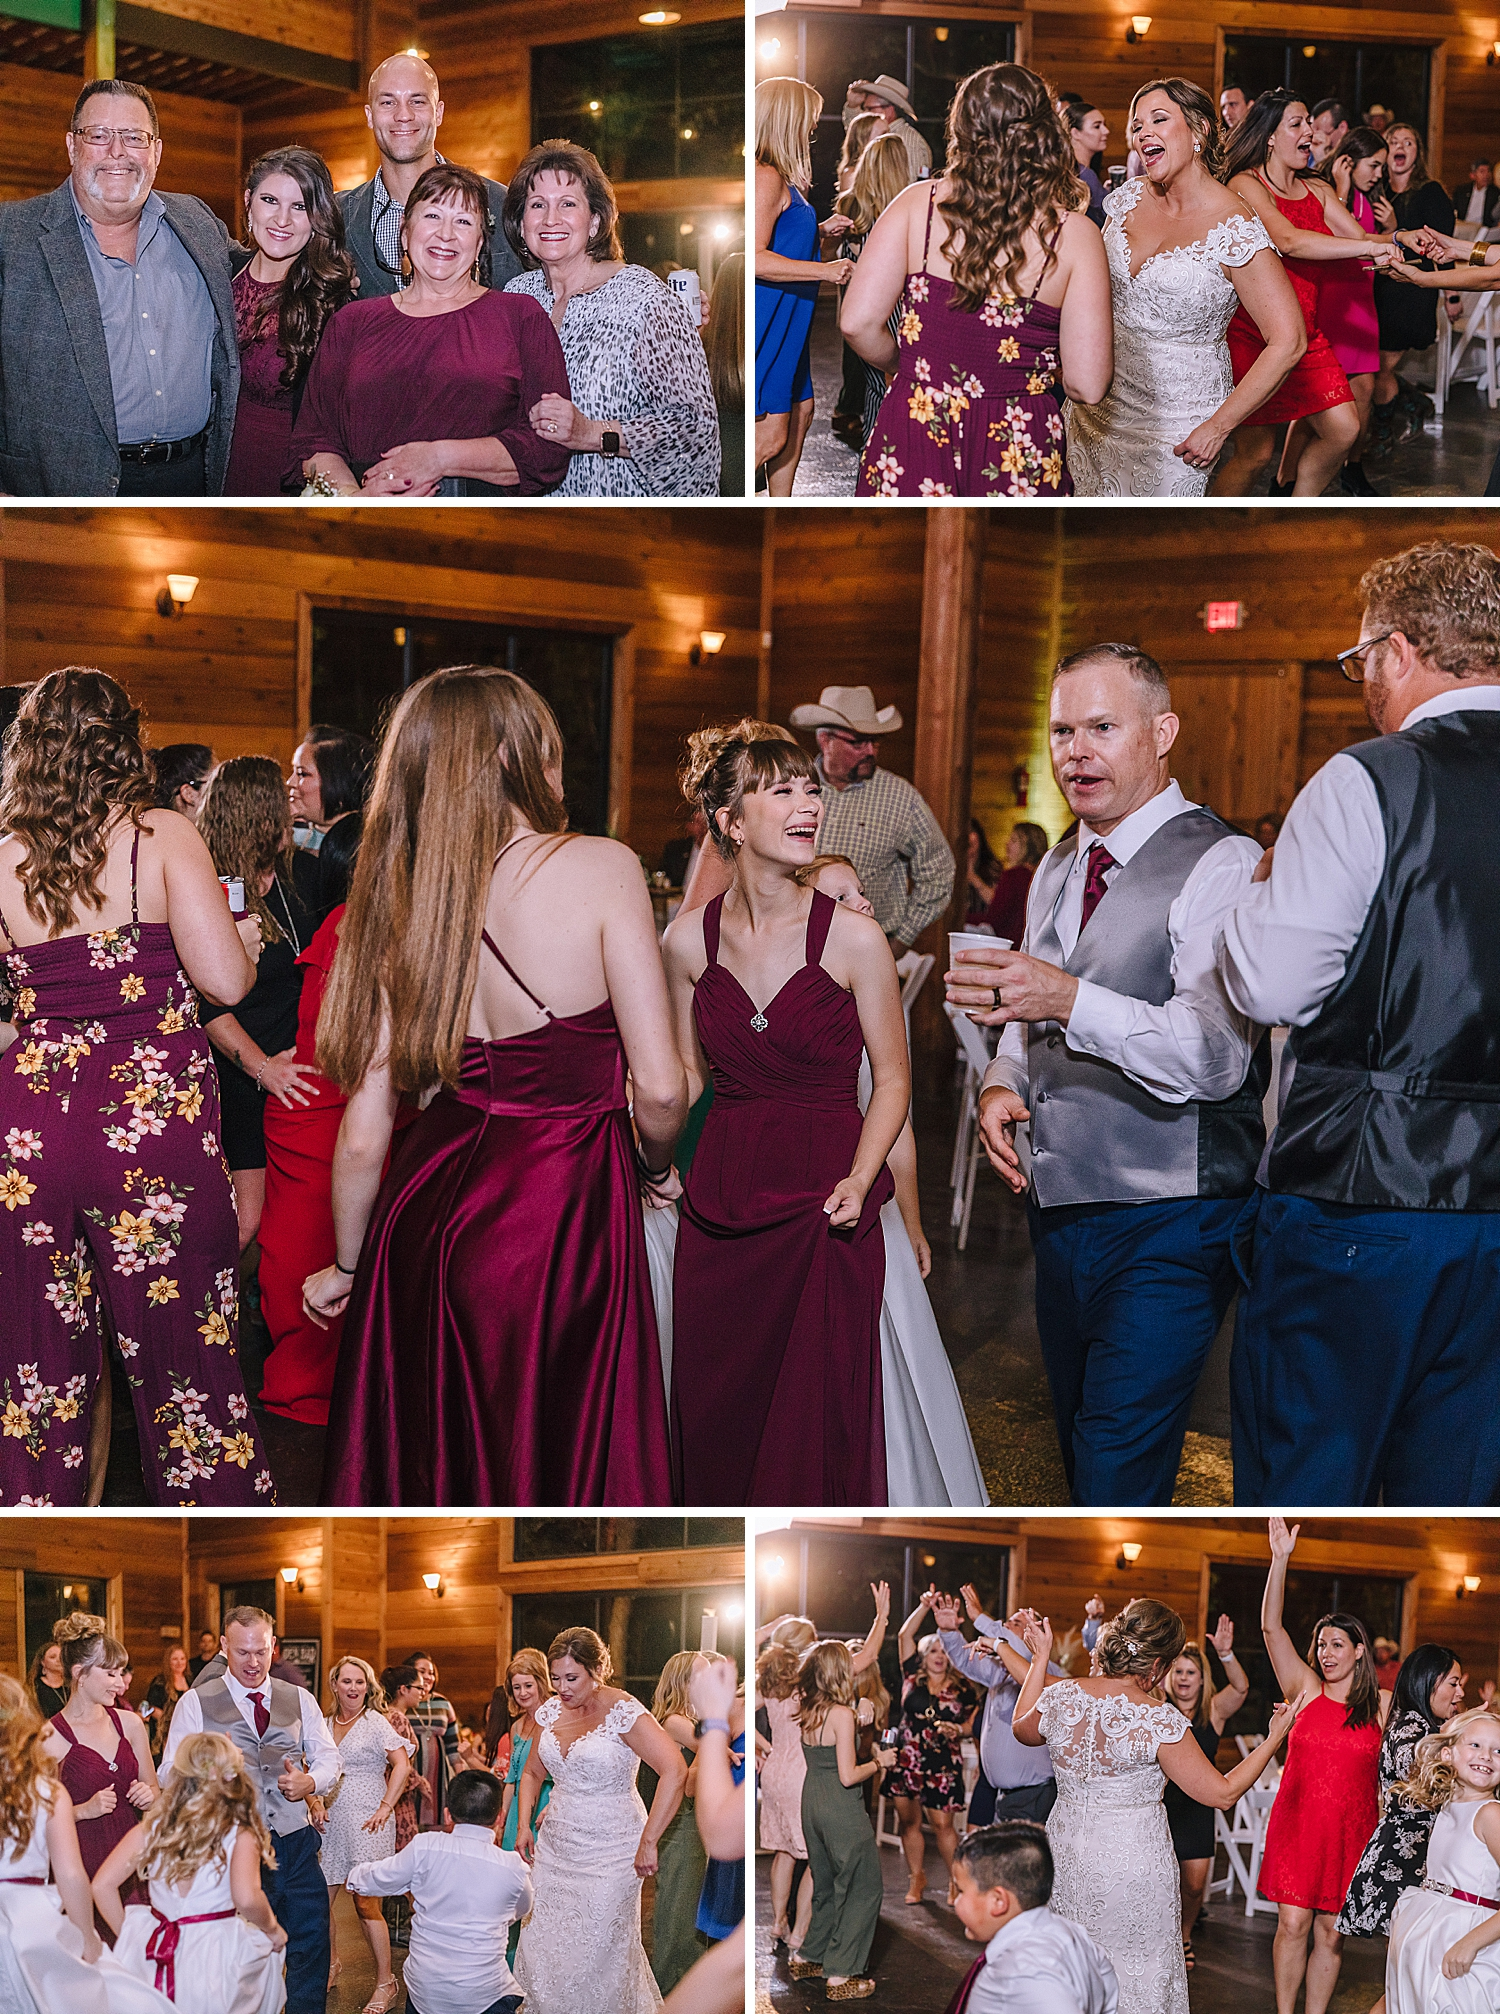 Geronimo-Oaks-Wedding-Venue-Seguin-Texas-Elegant-Navy-Burgundy-Wedding-Carly-Barton-Photography_0070.jpg